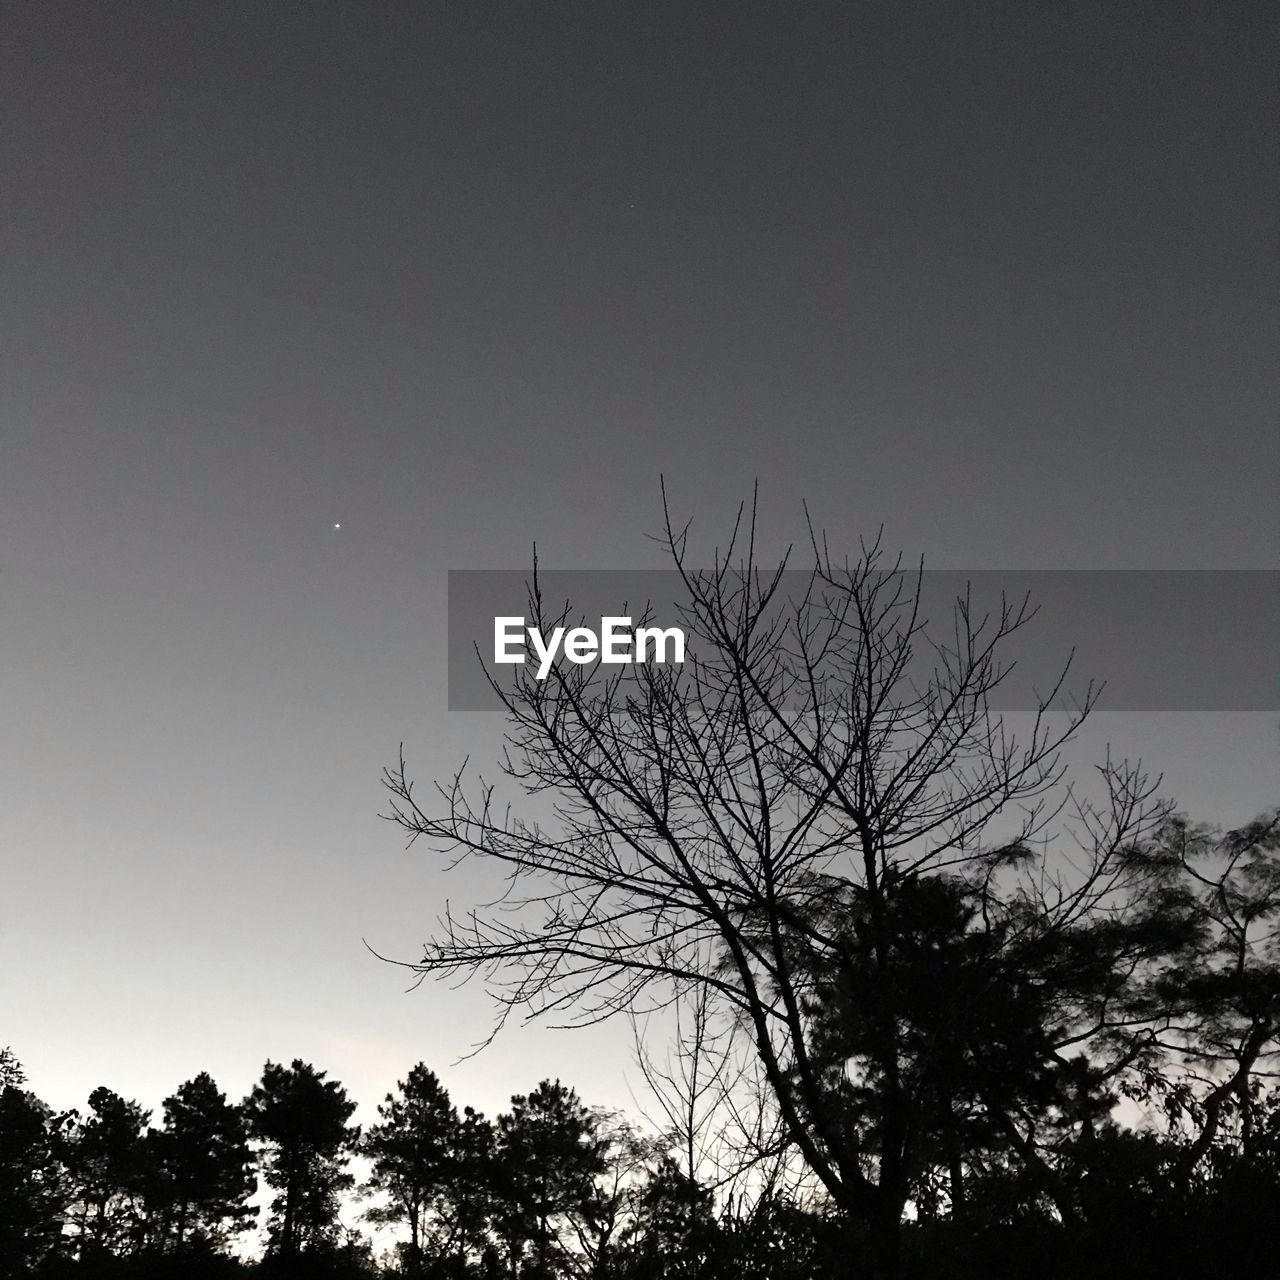 tree, sky, plant, silhouette, tranquility, beauty in nature, low angle view, nature, scenics - nature, bare tree, no people, tranquil scene, branch, growth, copy space, clear sky, moon, outdoors, dusk, night, treetop